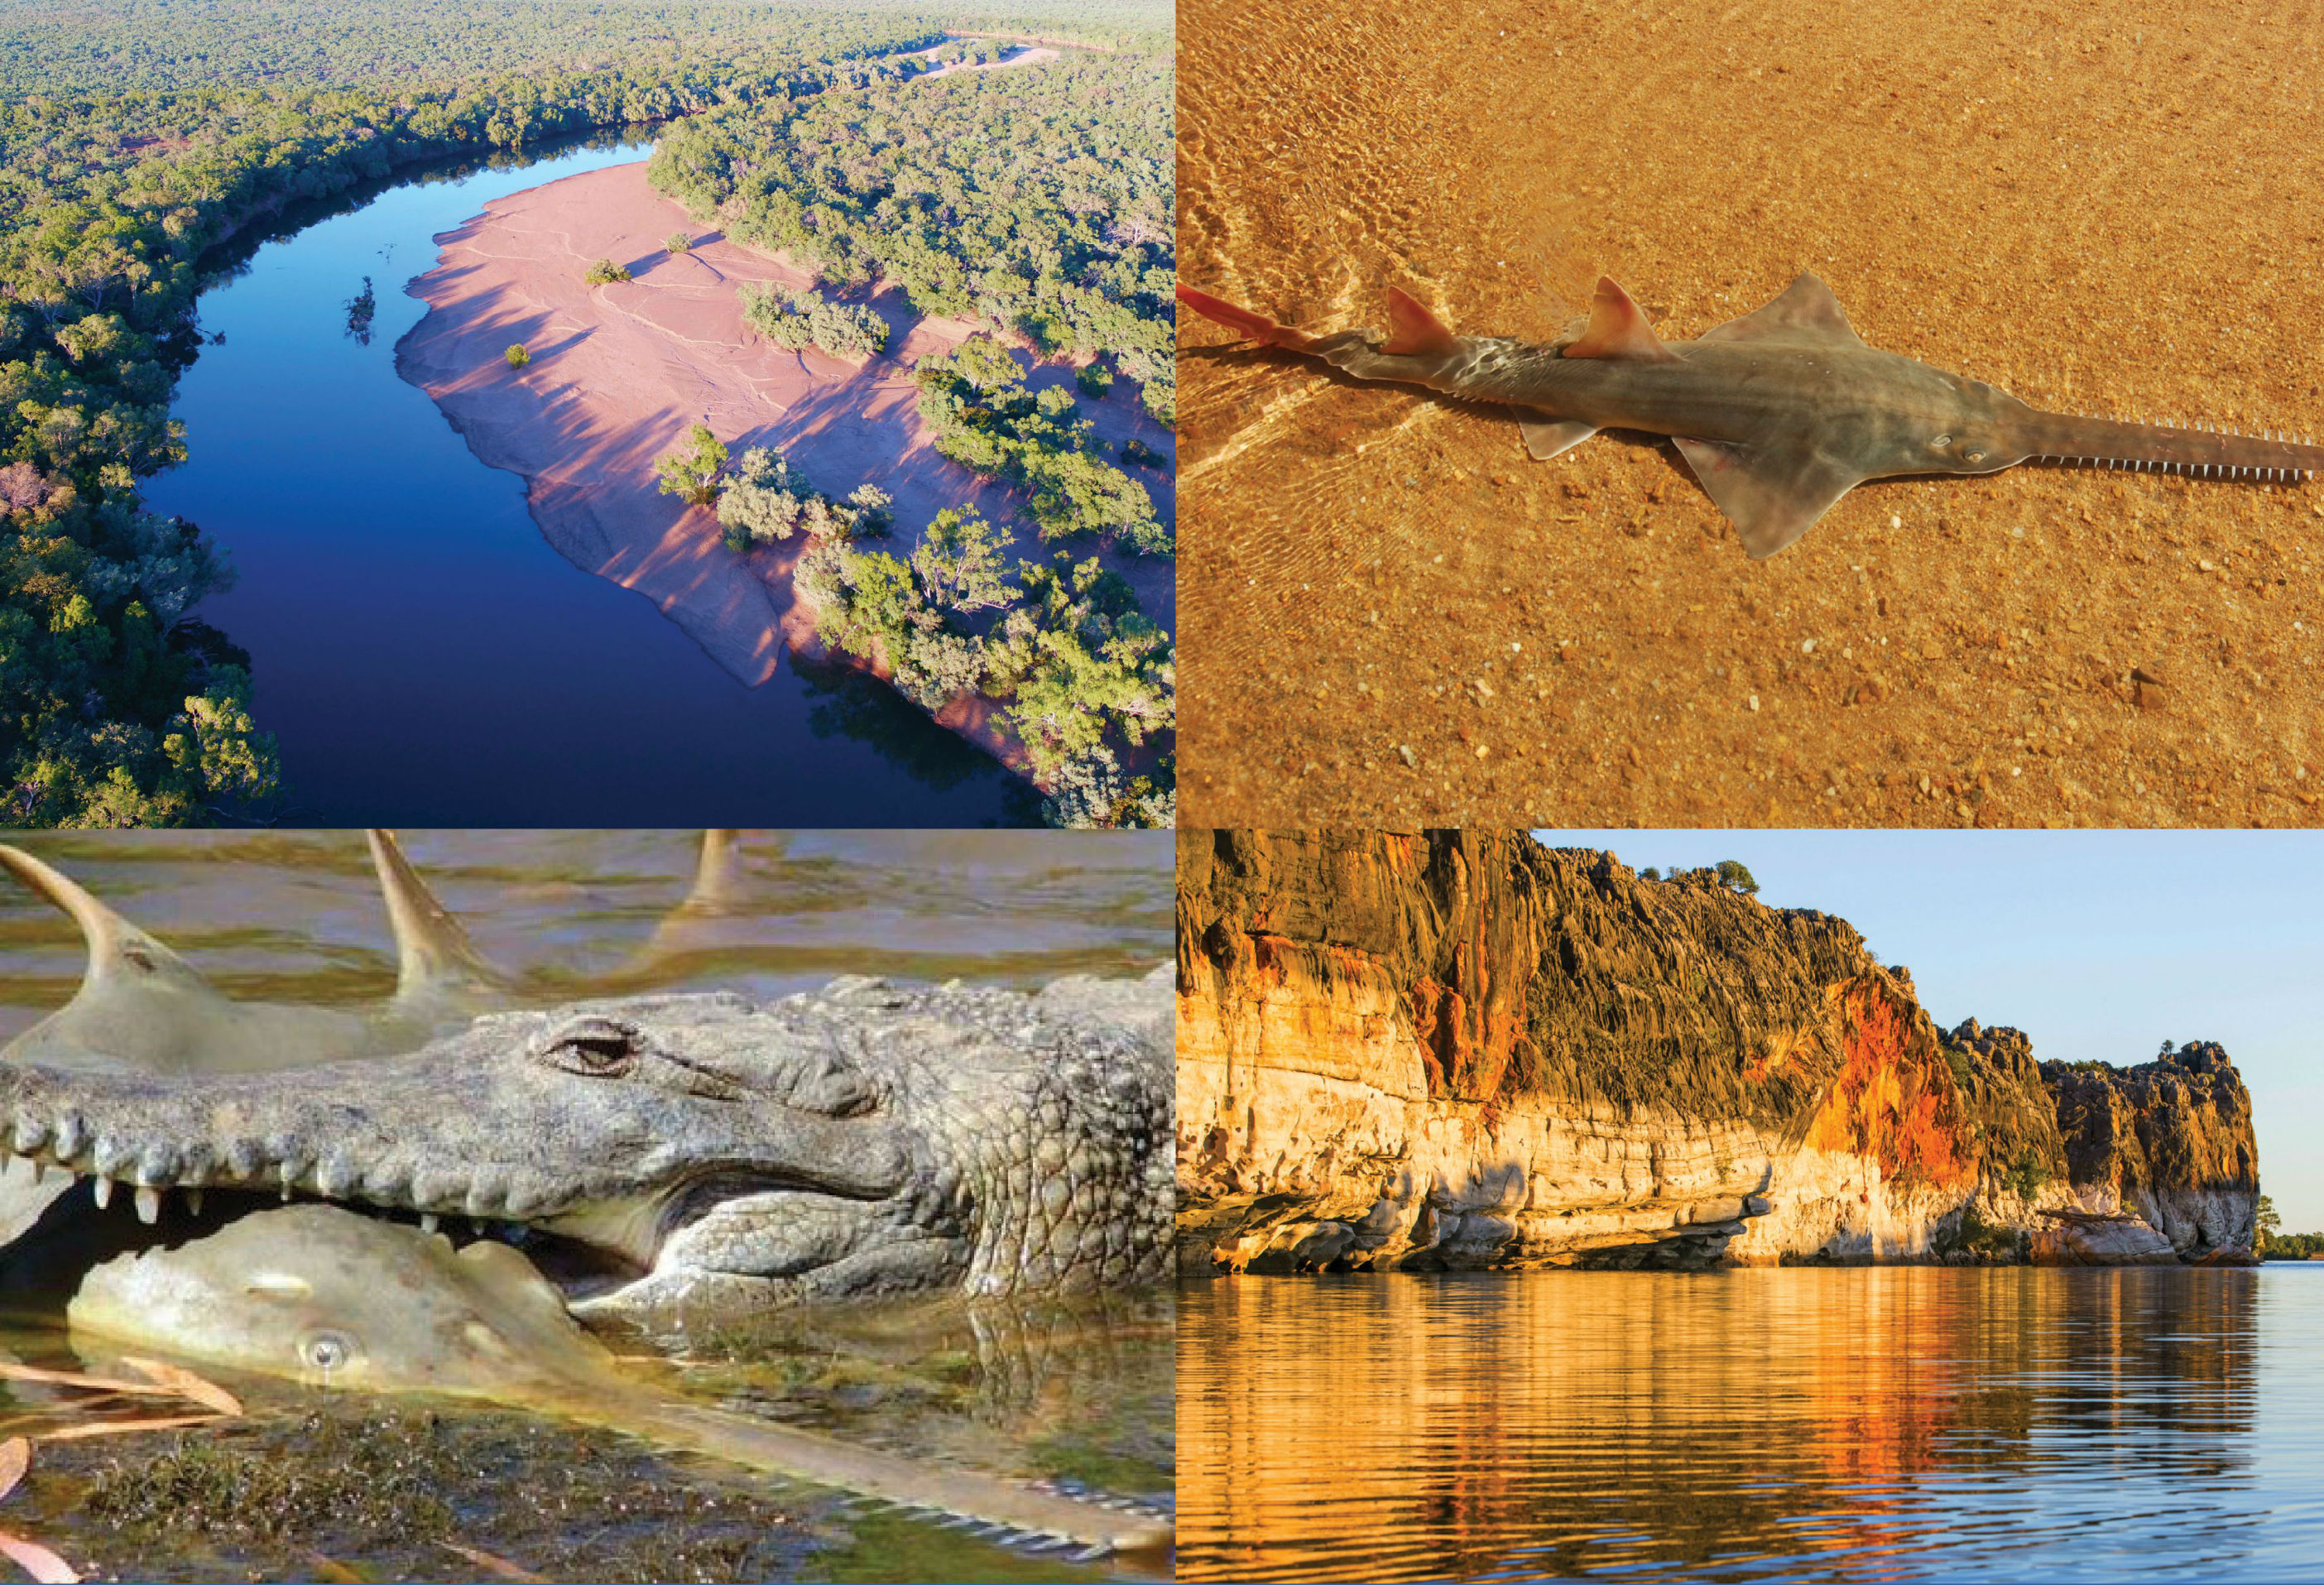 The Fitzroy is the lifeblood of the Kimberley and is a globally important nursery and breeding ground for the critically endangered Freshwater Sawfish.